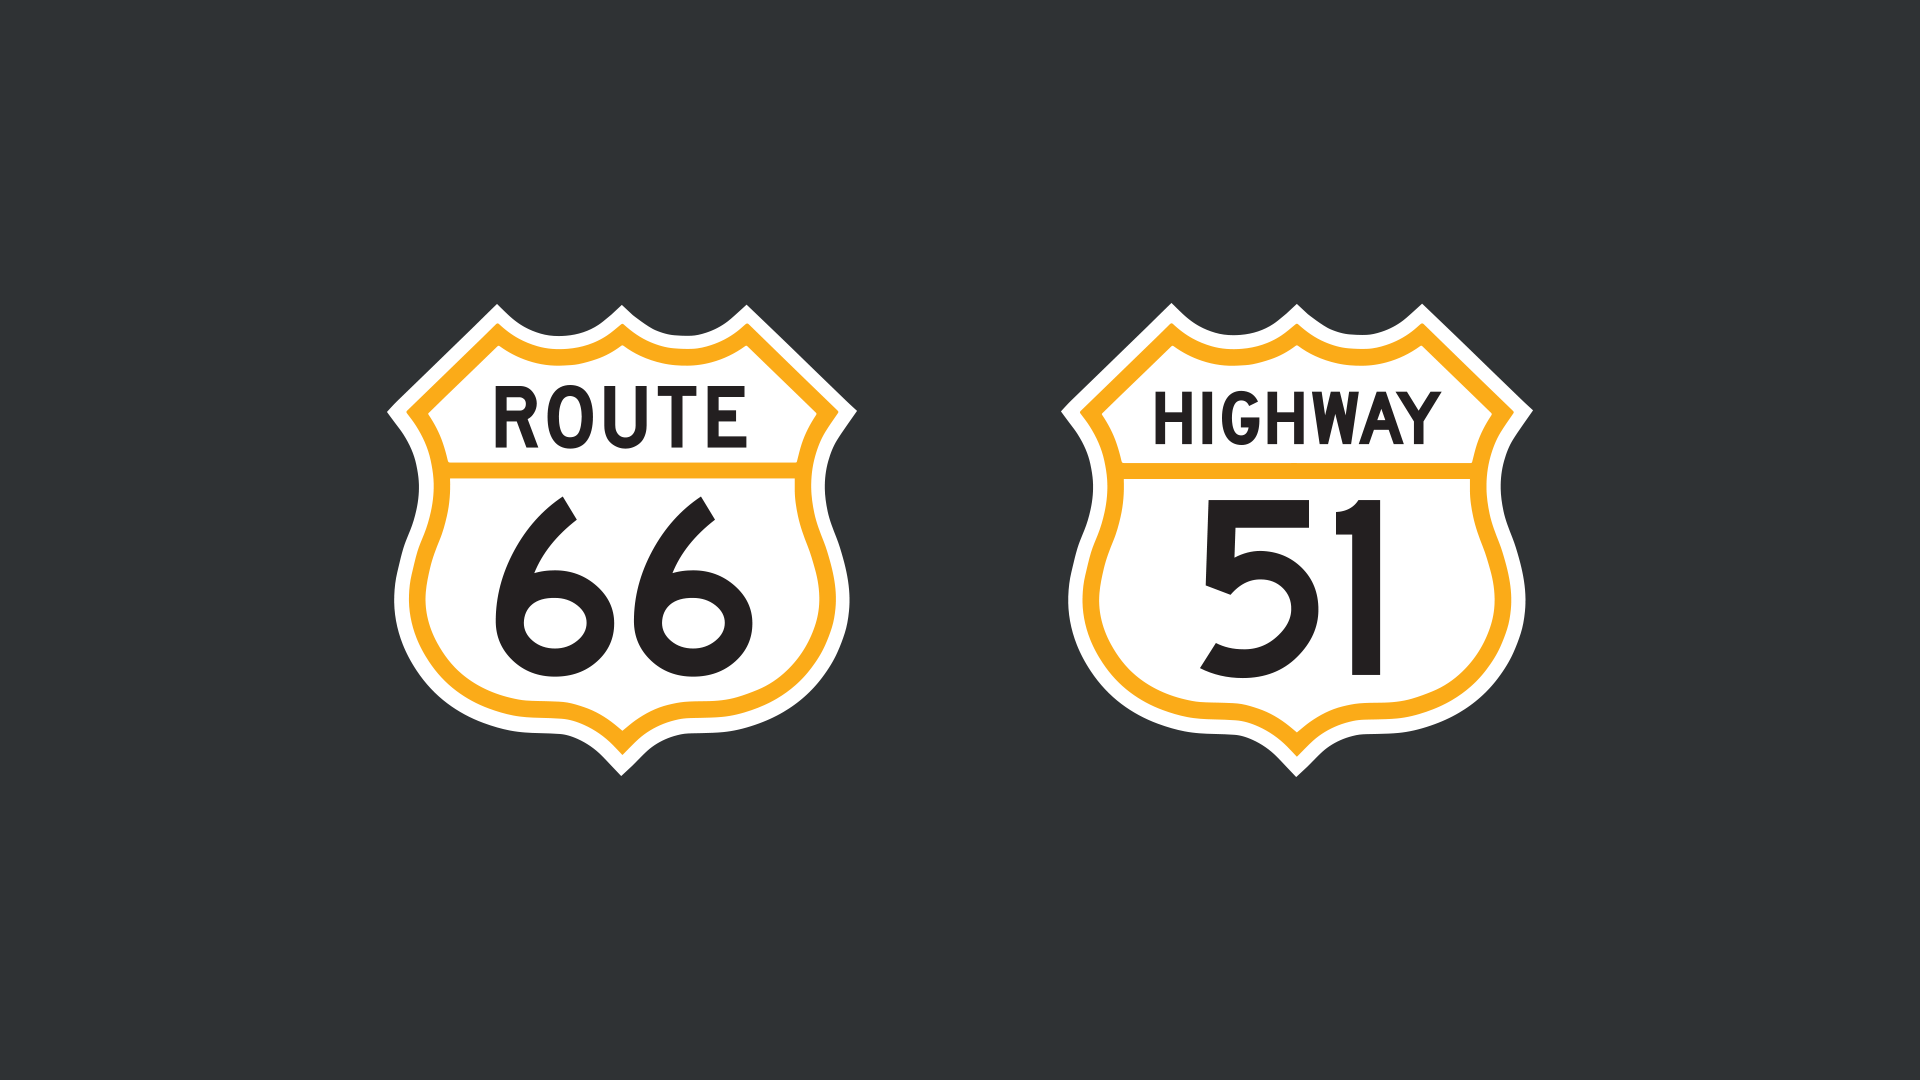 Jungheinrich campaign route 66 highway 51